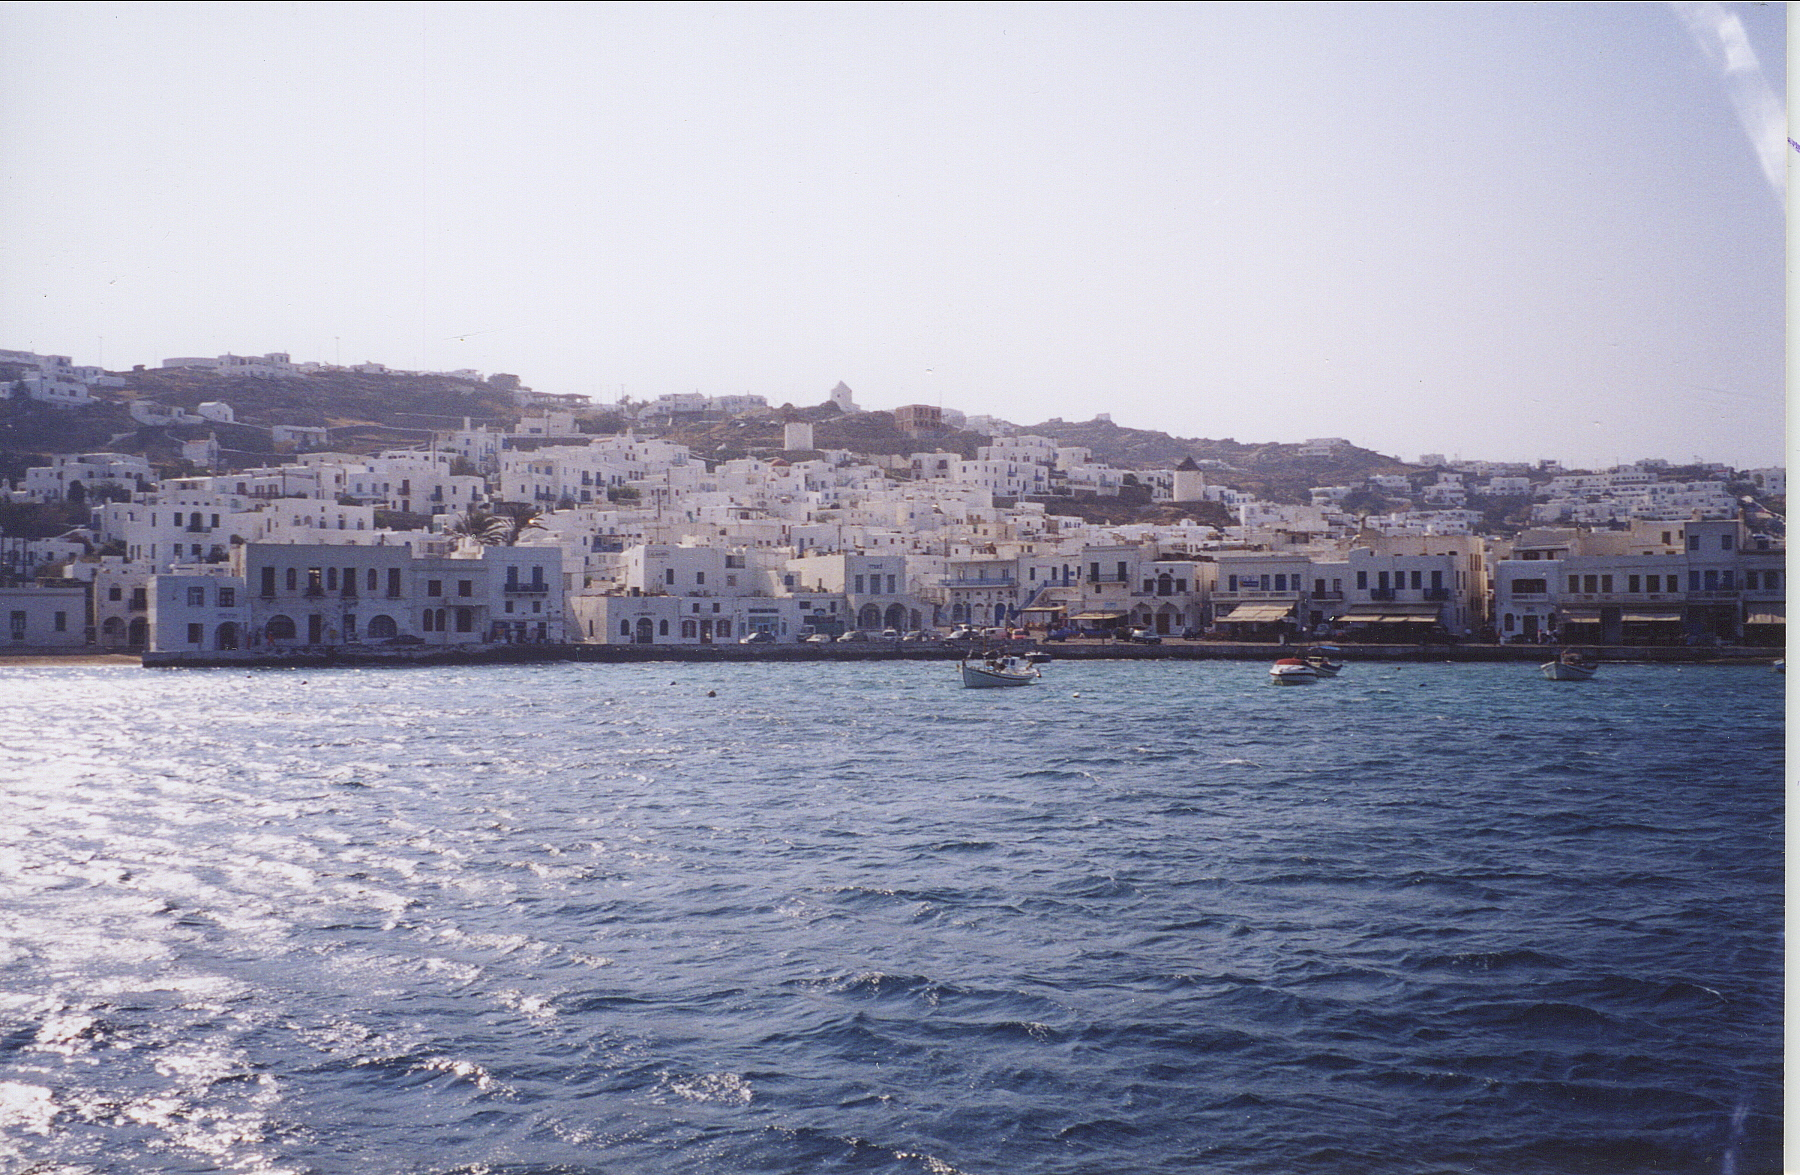 Returning to Mykonos after a day trip to Delos.